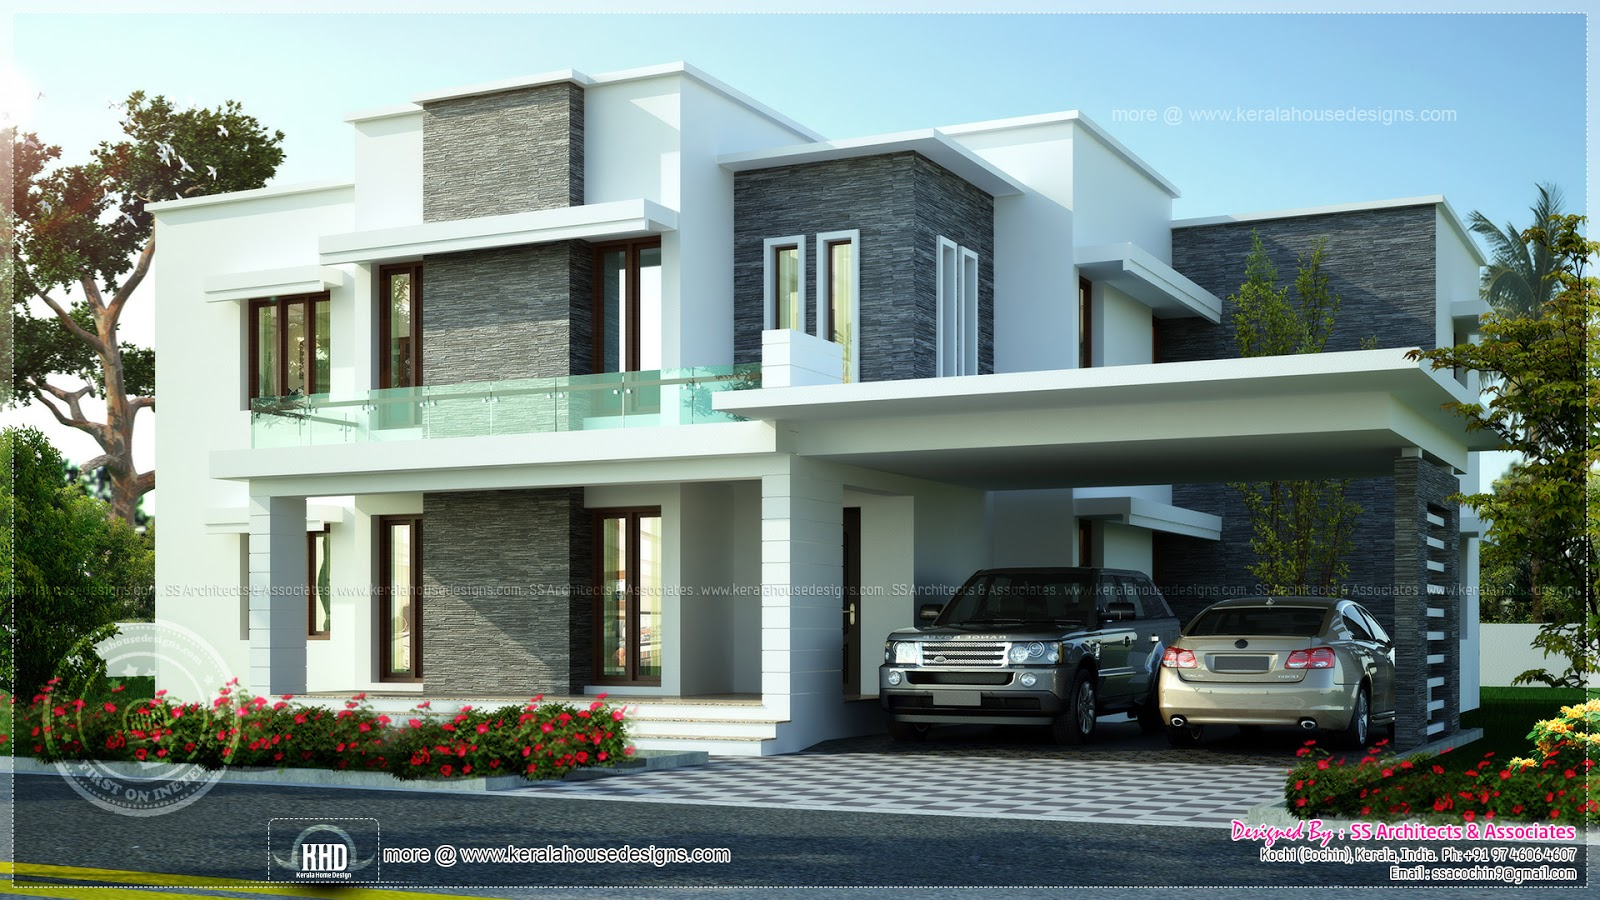 Flat roof single storey home in 1850 sq ft keralahousedesigns - Modern villa designs ...